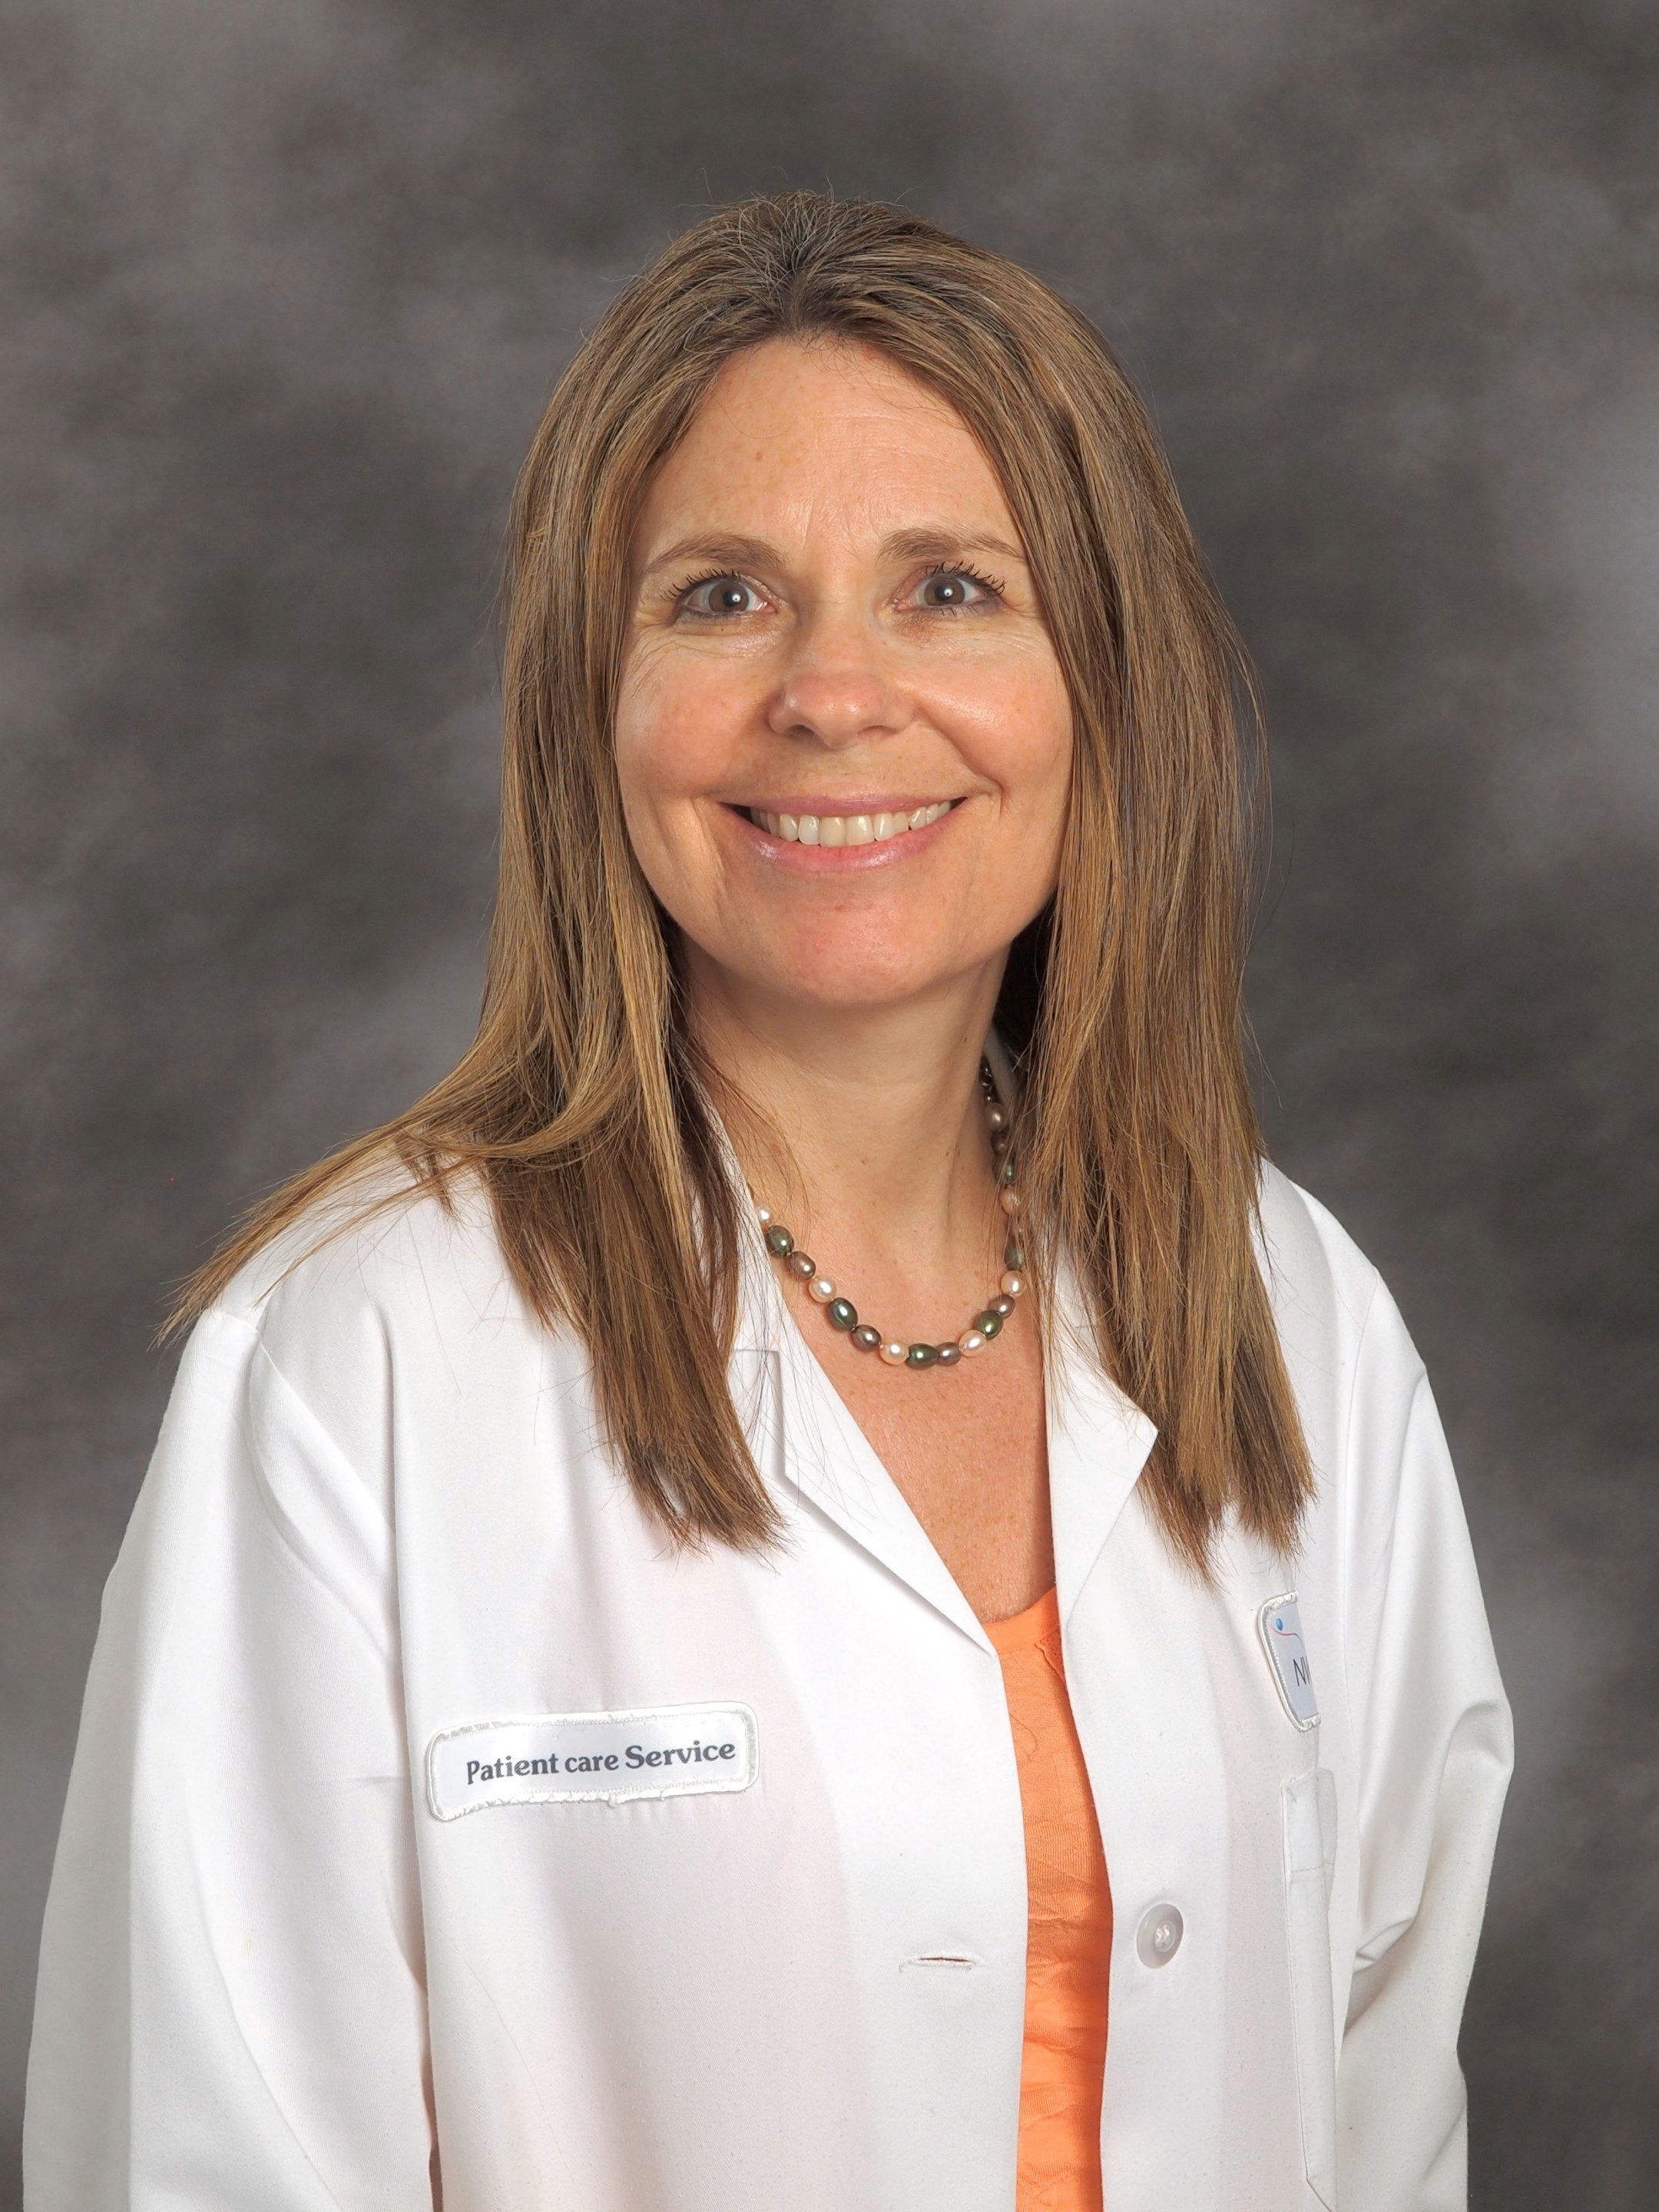 Marla Koroly, MD, wearing an orange shirt